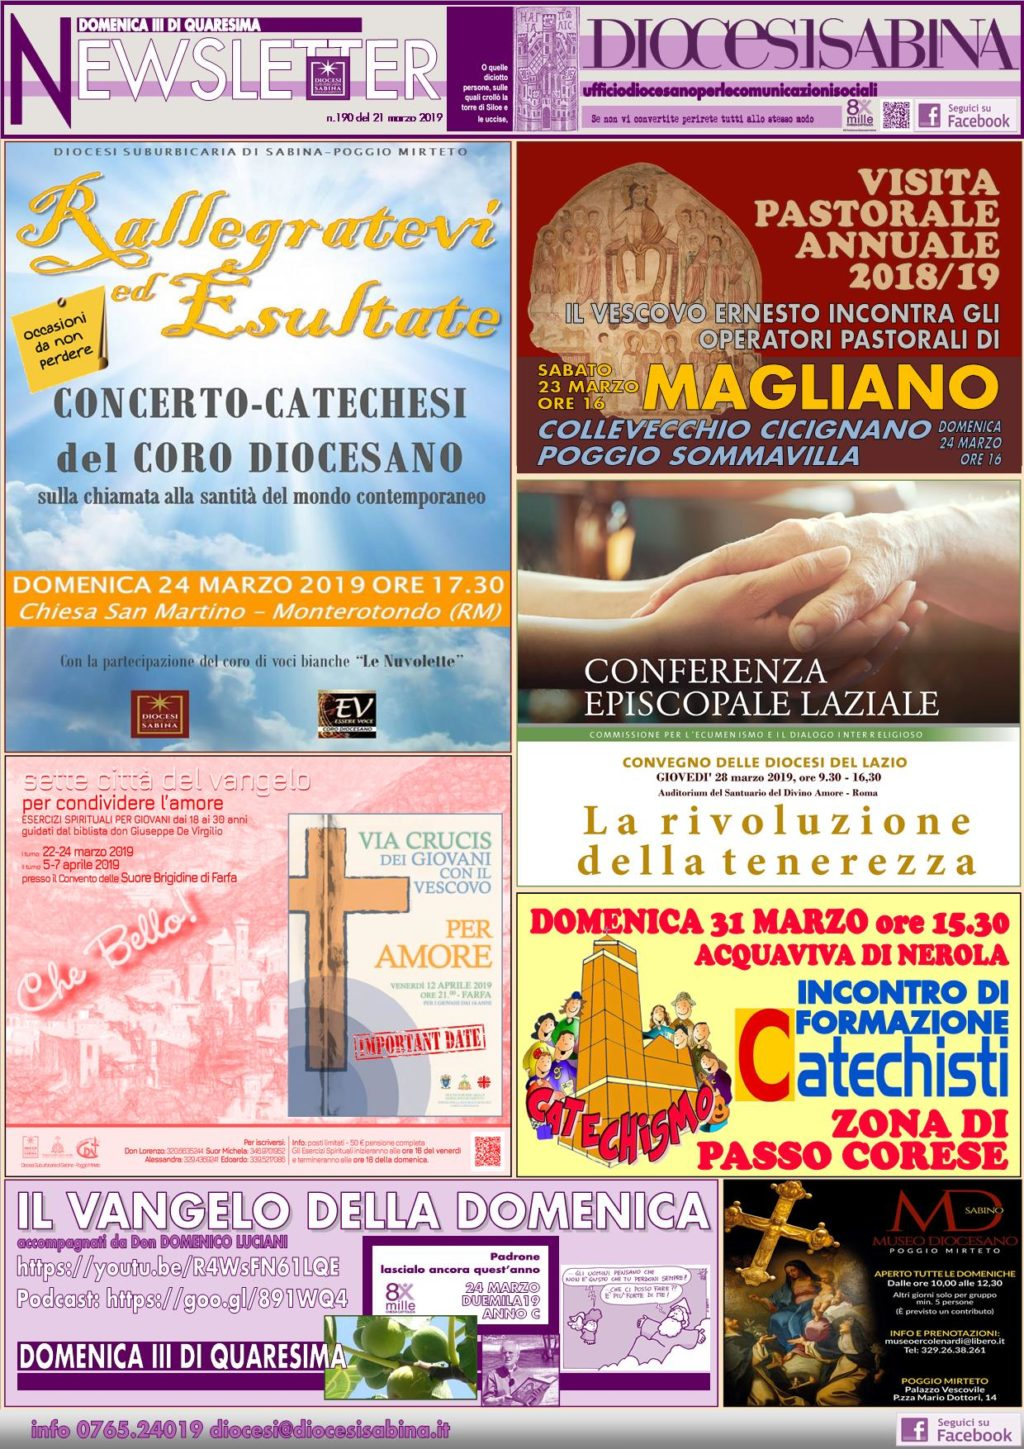 Newsletter DIOCESISABINA